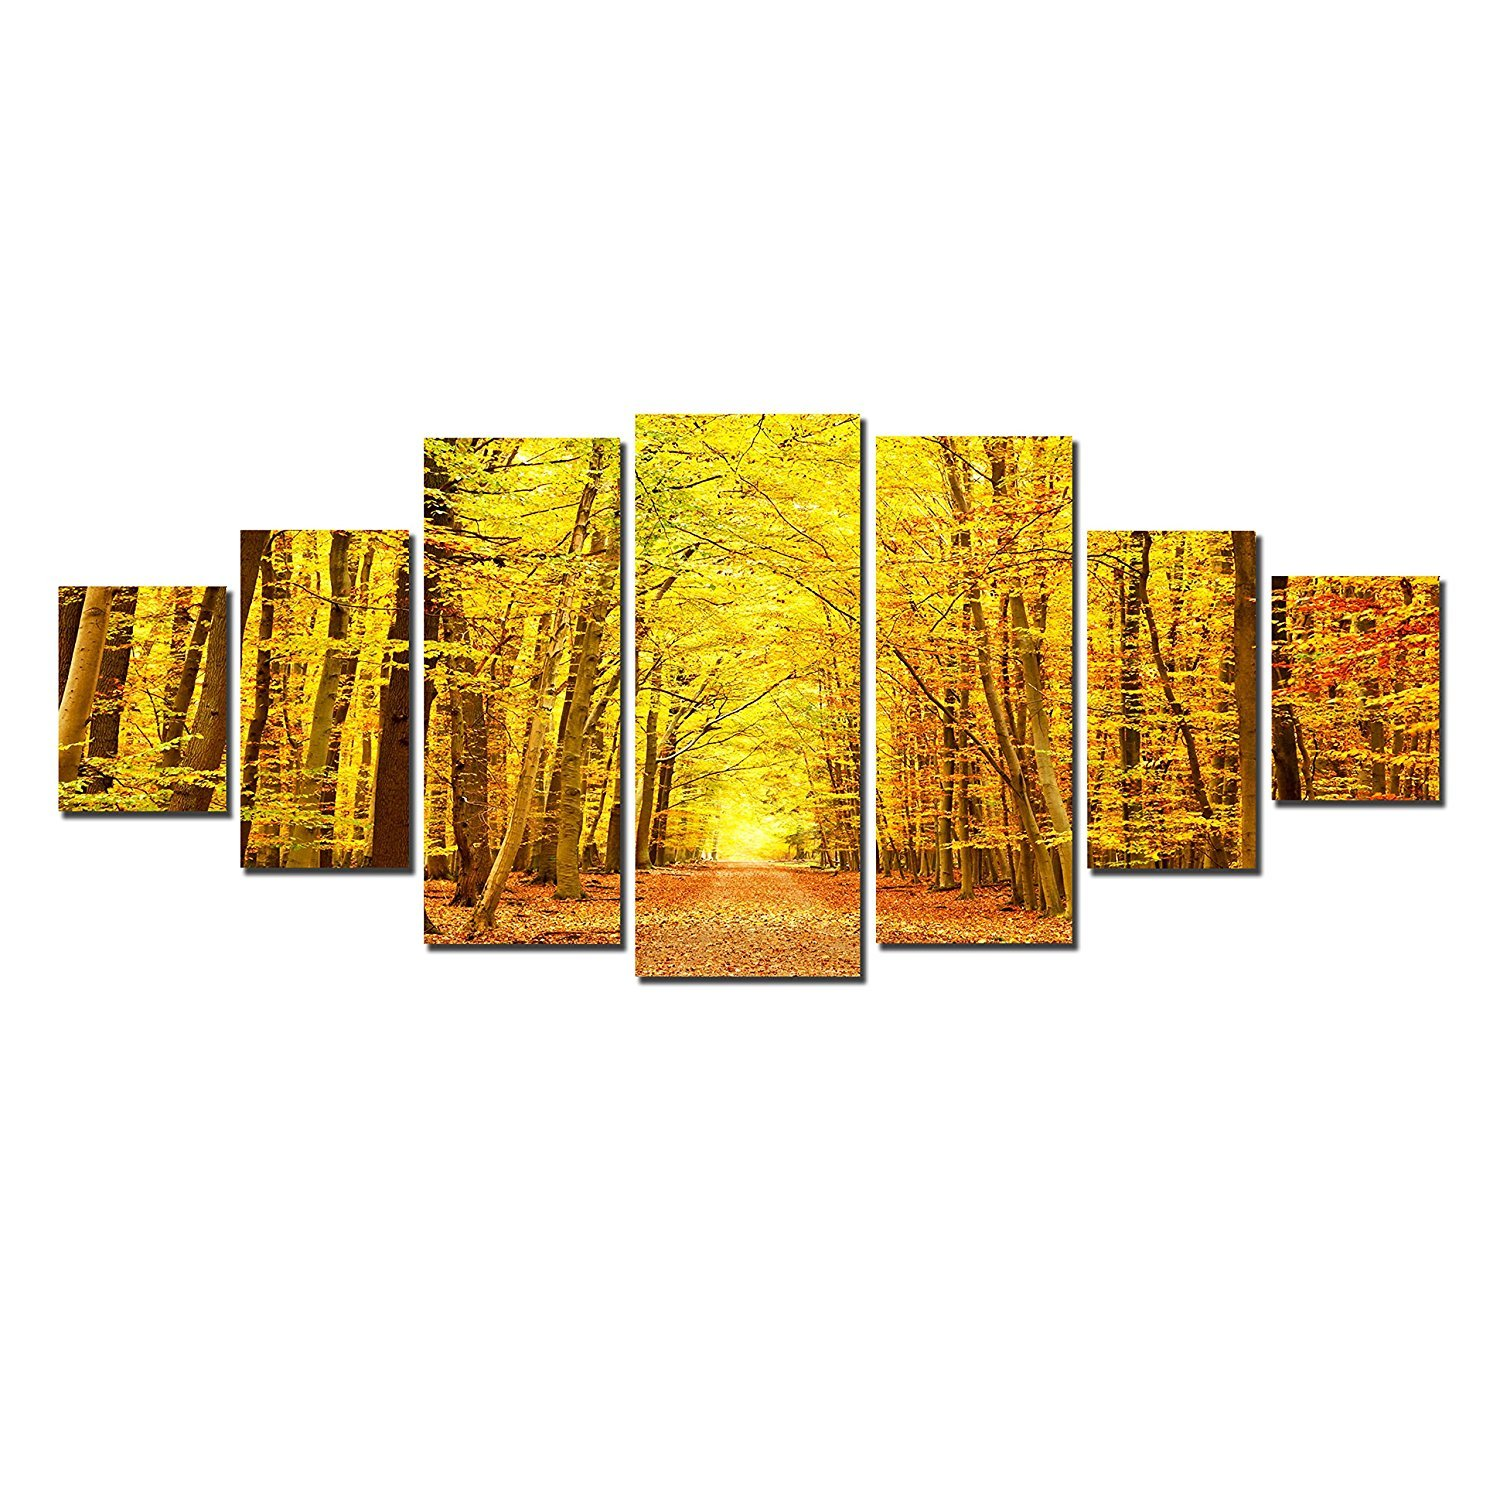 Startonight Glow in the Dark, Huge Canvas Wall Art Autumn Forest, Home Decor, Dual View Surprise Artwork Modern Framed Wall Art Set of 7 Panels Total 39.37 x 94.49 inch by Startonight